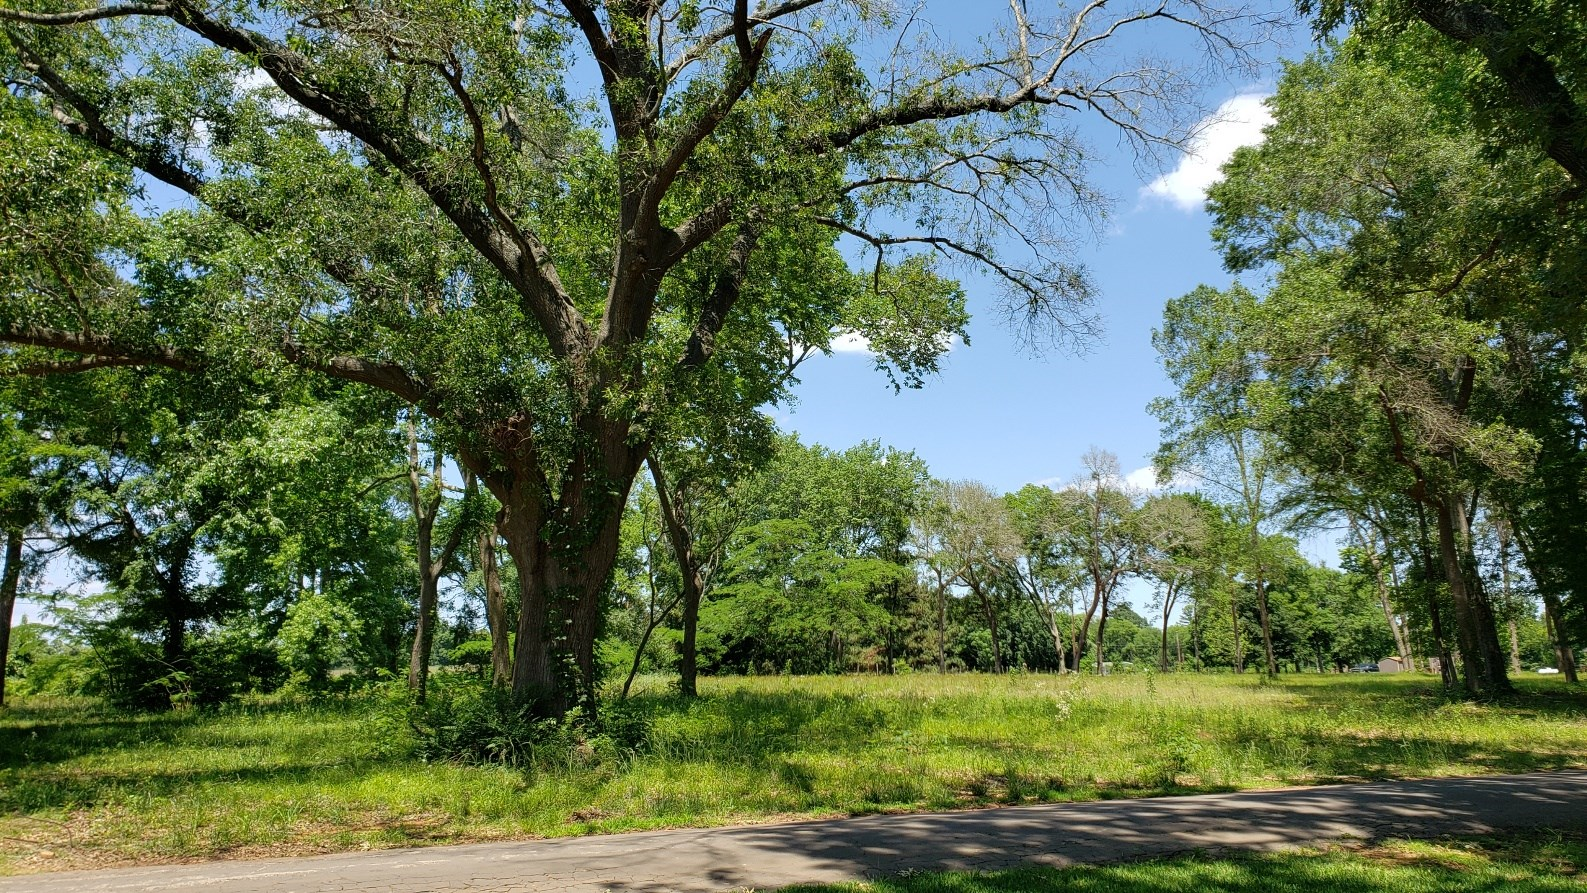 WATERVIEW LOT FOR SALE IN RESTRICTED NEIGHBORHOOD